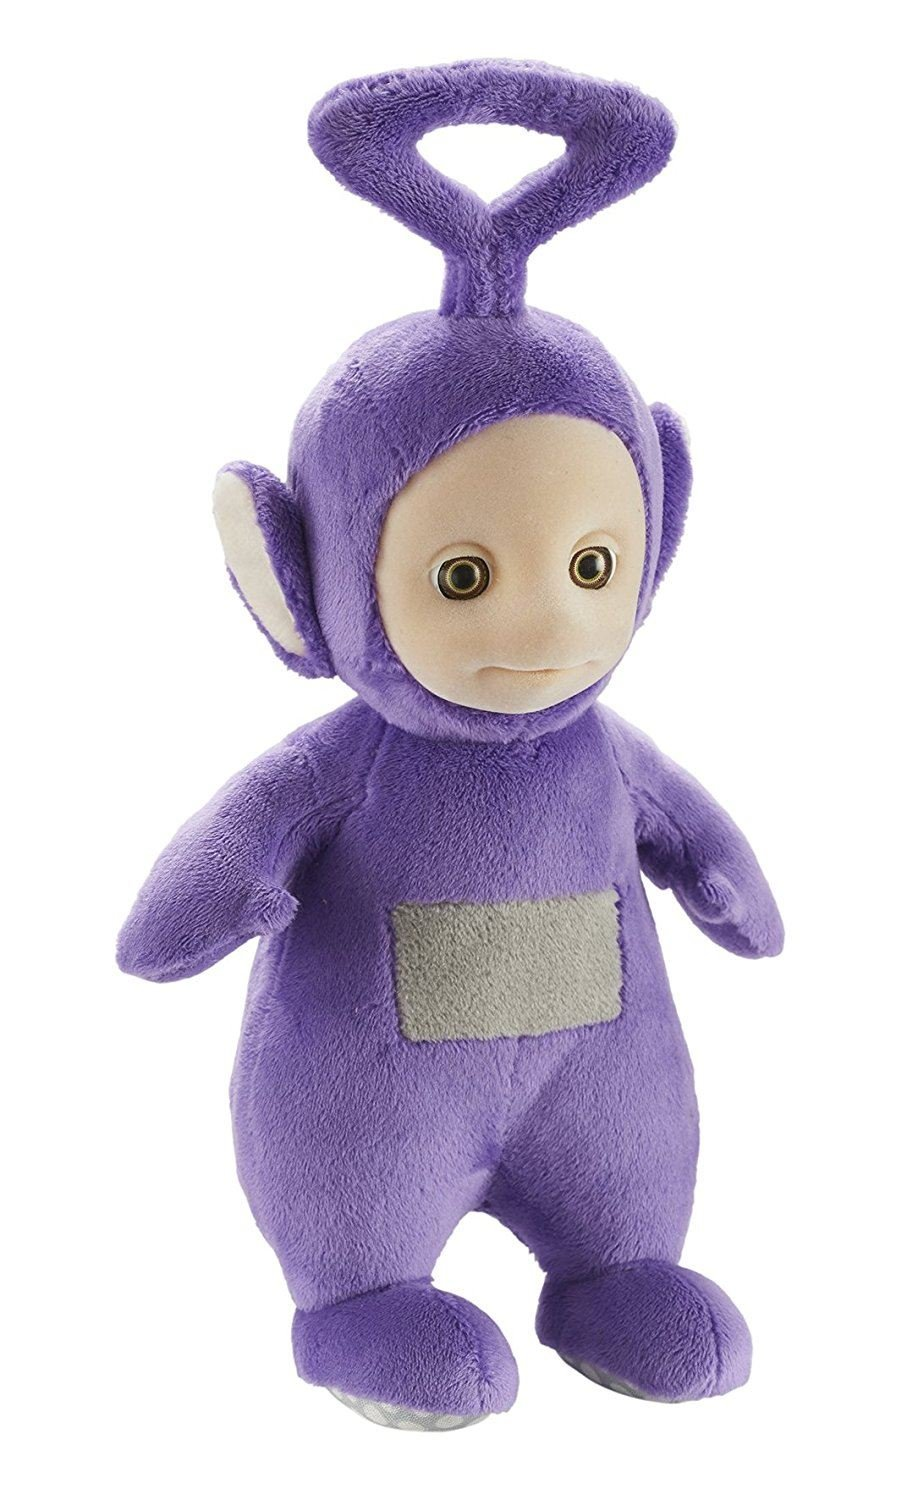 Teletubbies 26cm Talking Tinky Winky Soft Plush Toy Brand New HST